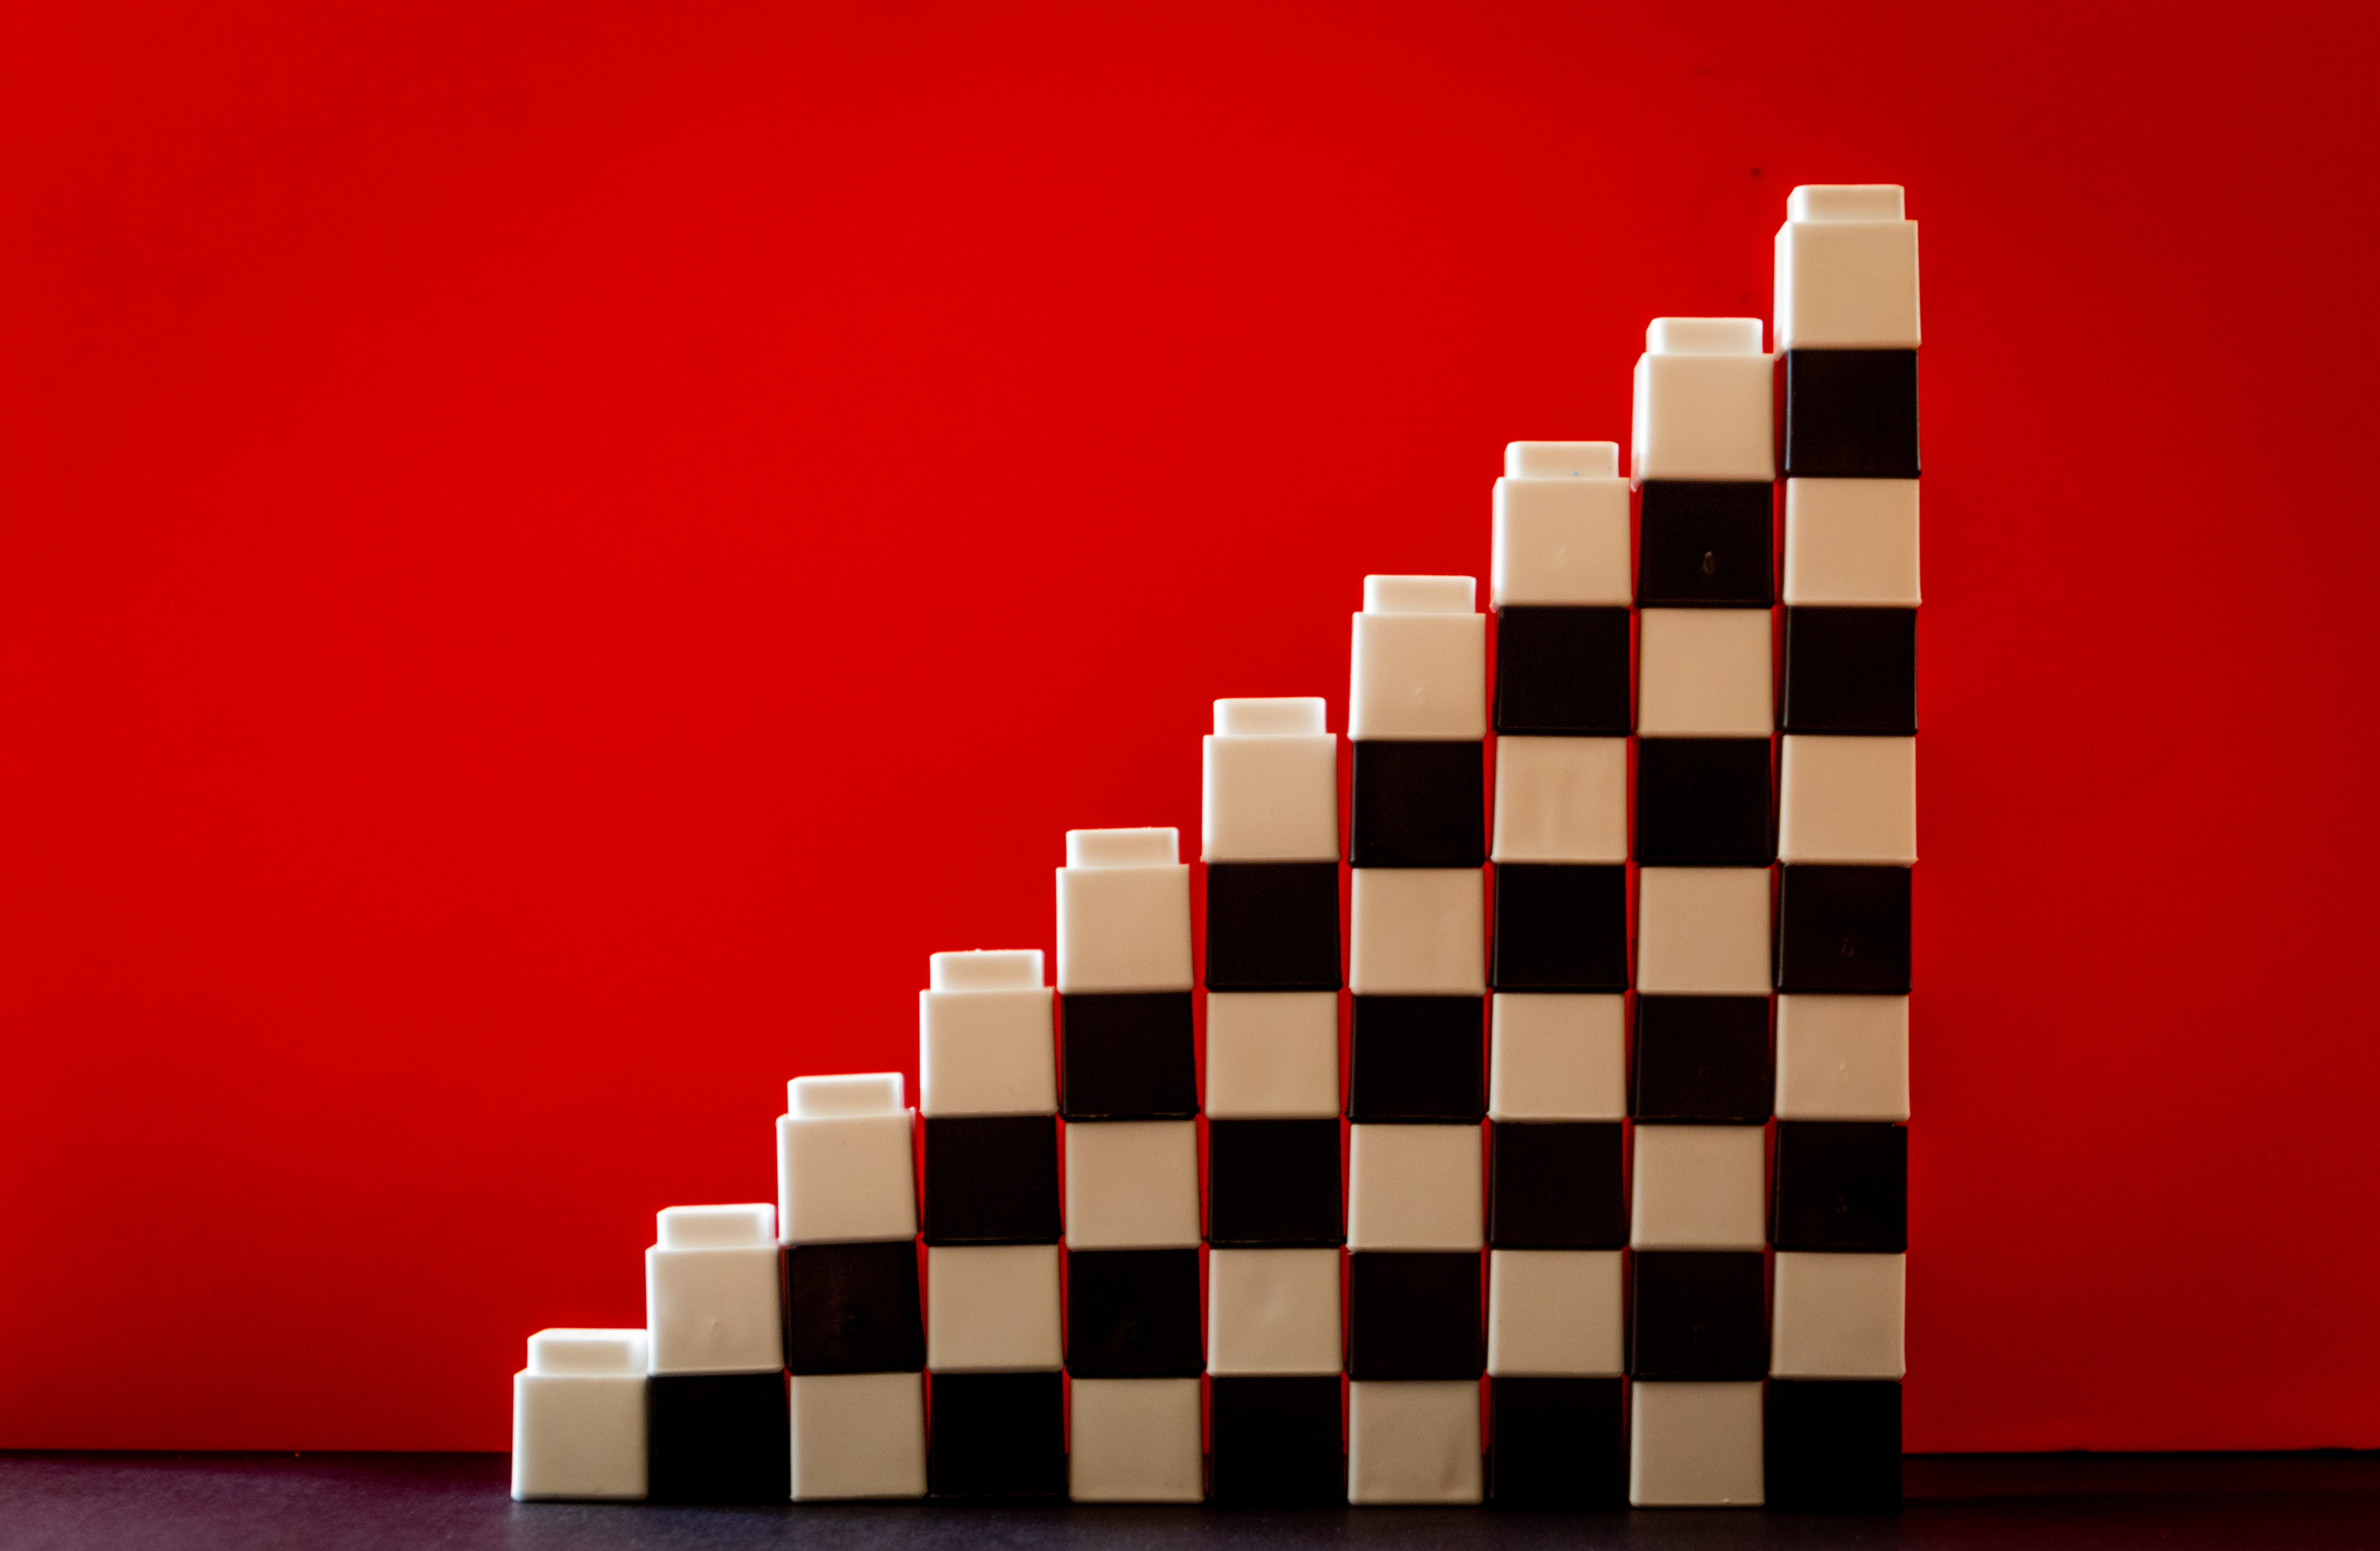 White and Black Checkered Brick Toys Stacked on Top of Each Other Forming Ladder